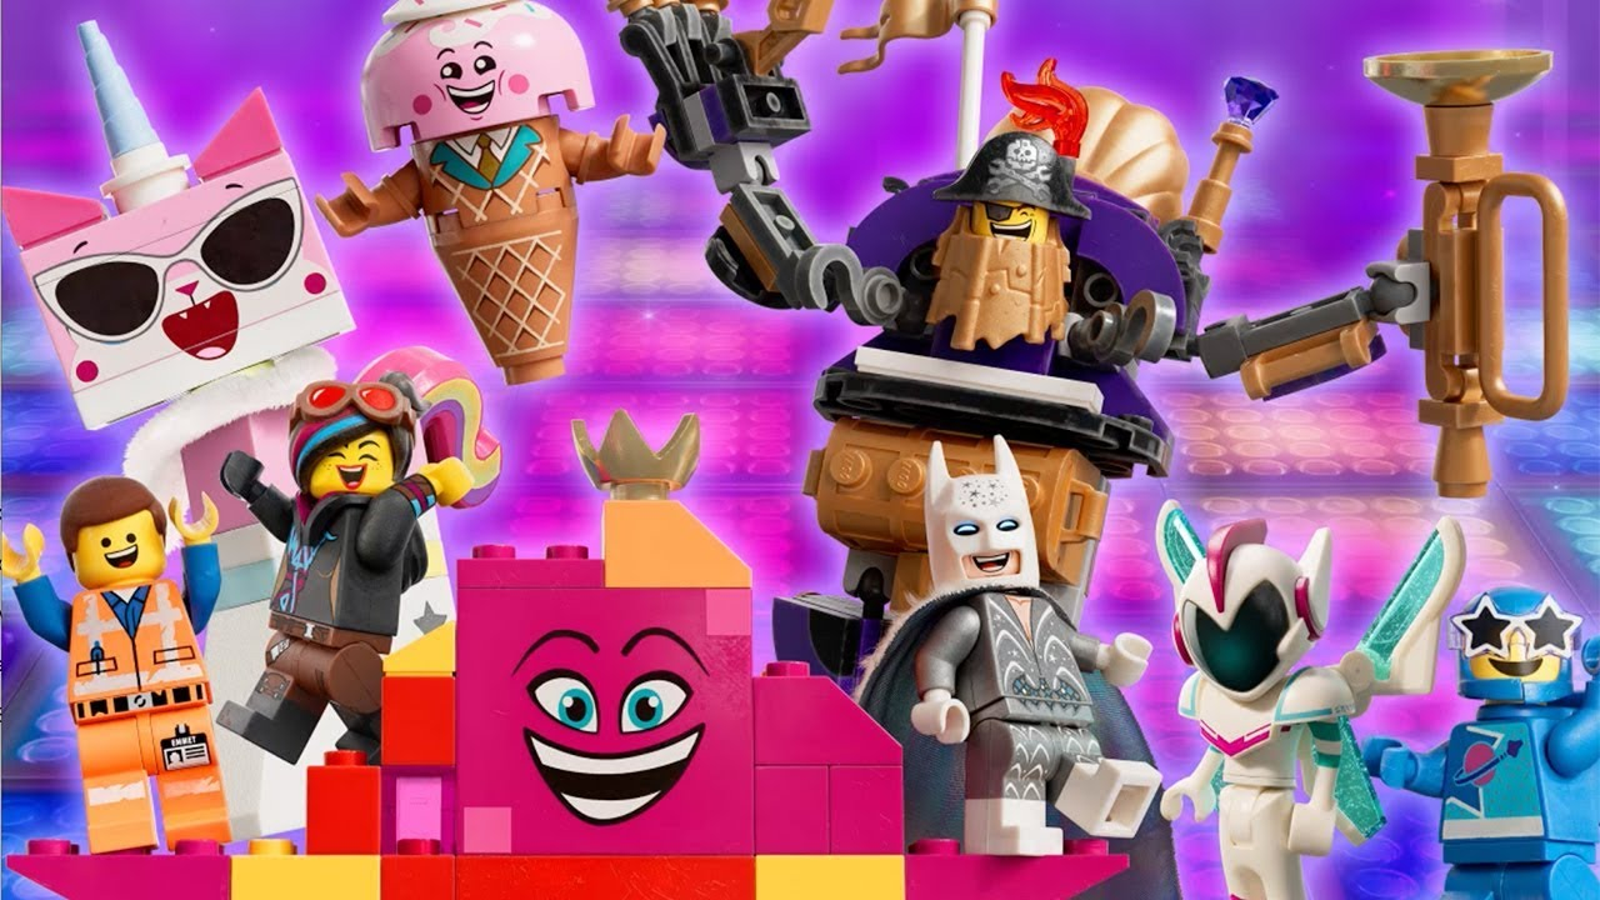 Pictures From The Lego Movie: The People From The LEGO Movie 2 Really, Desperately Want